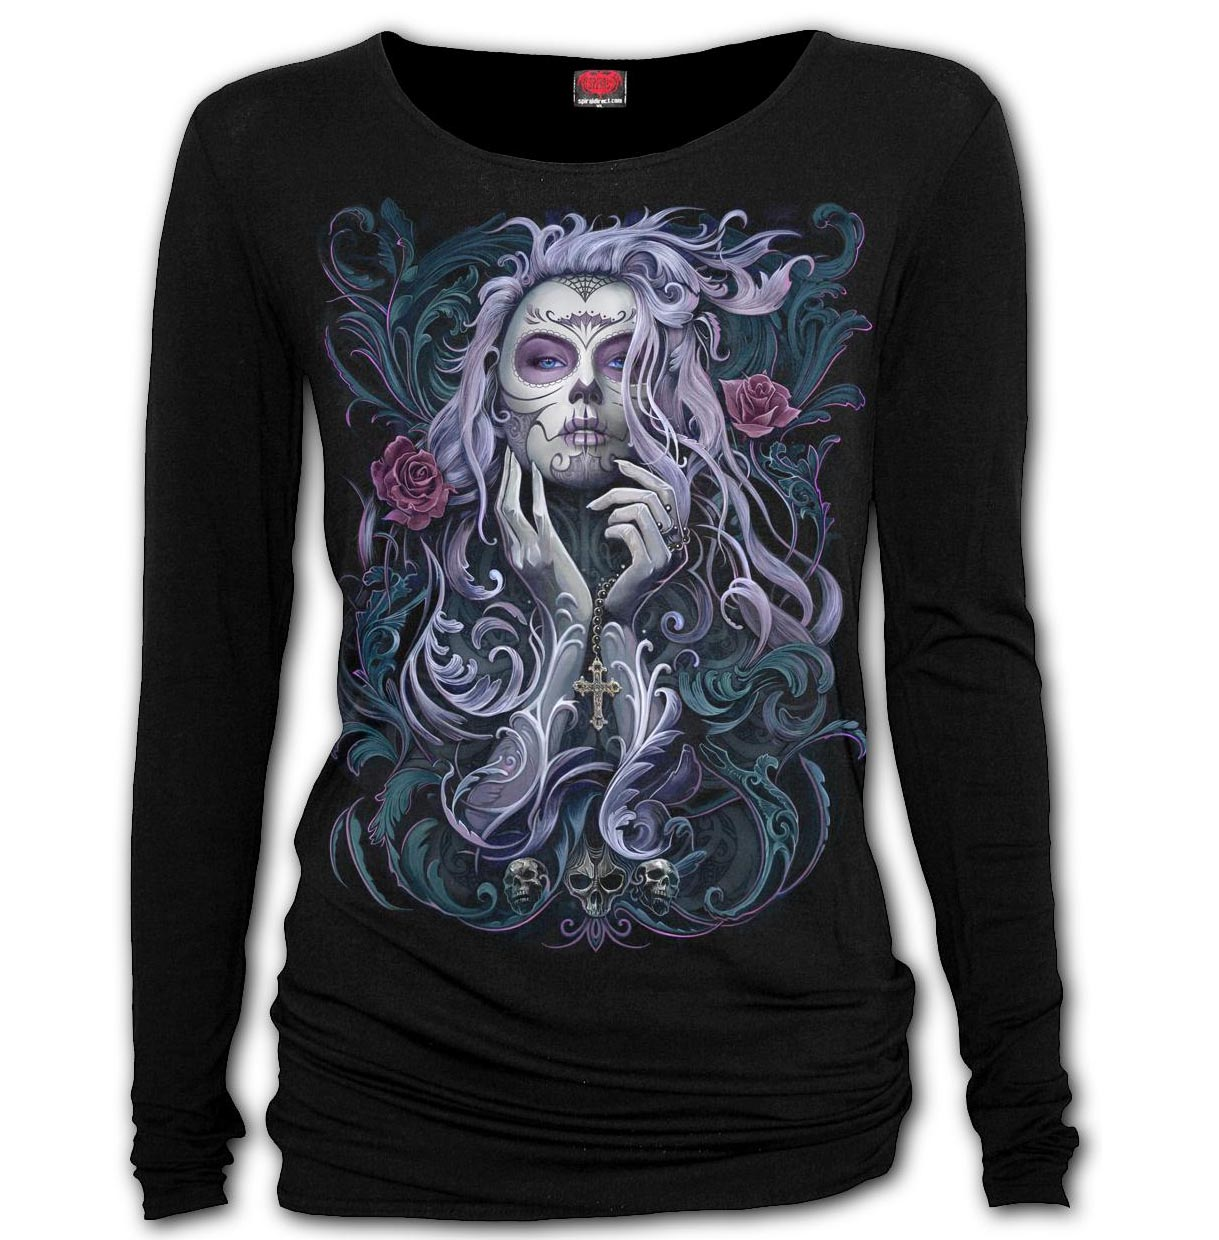 SPIRAL-Ladies-Black-Goth-ROCOCO-SKULL-Day-of-The-Dead-L-Sleeve-Top-All-Sizes thumbnail 7